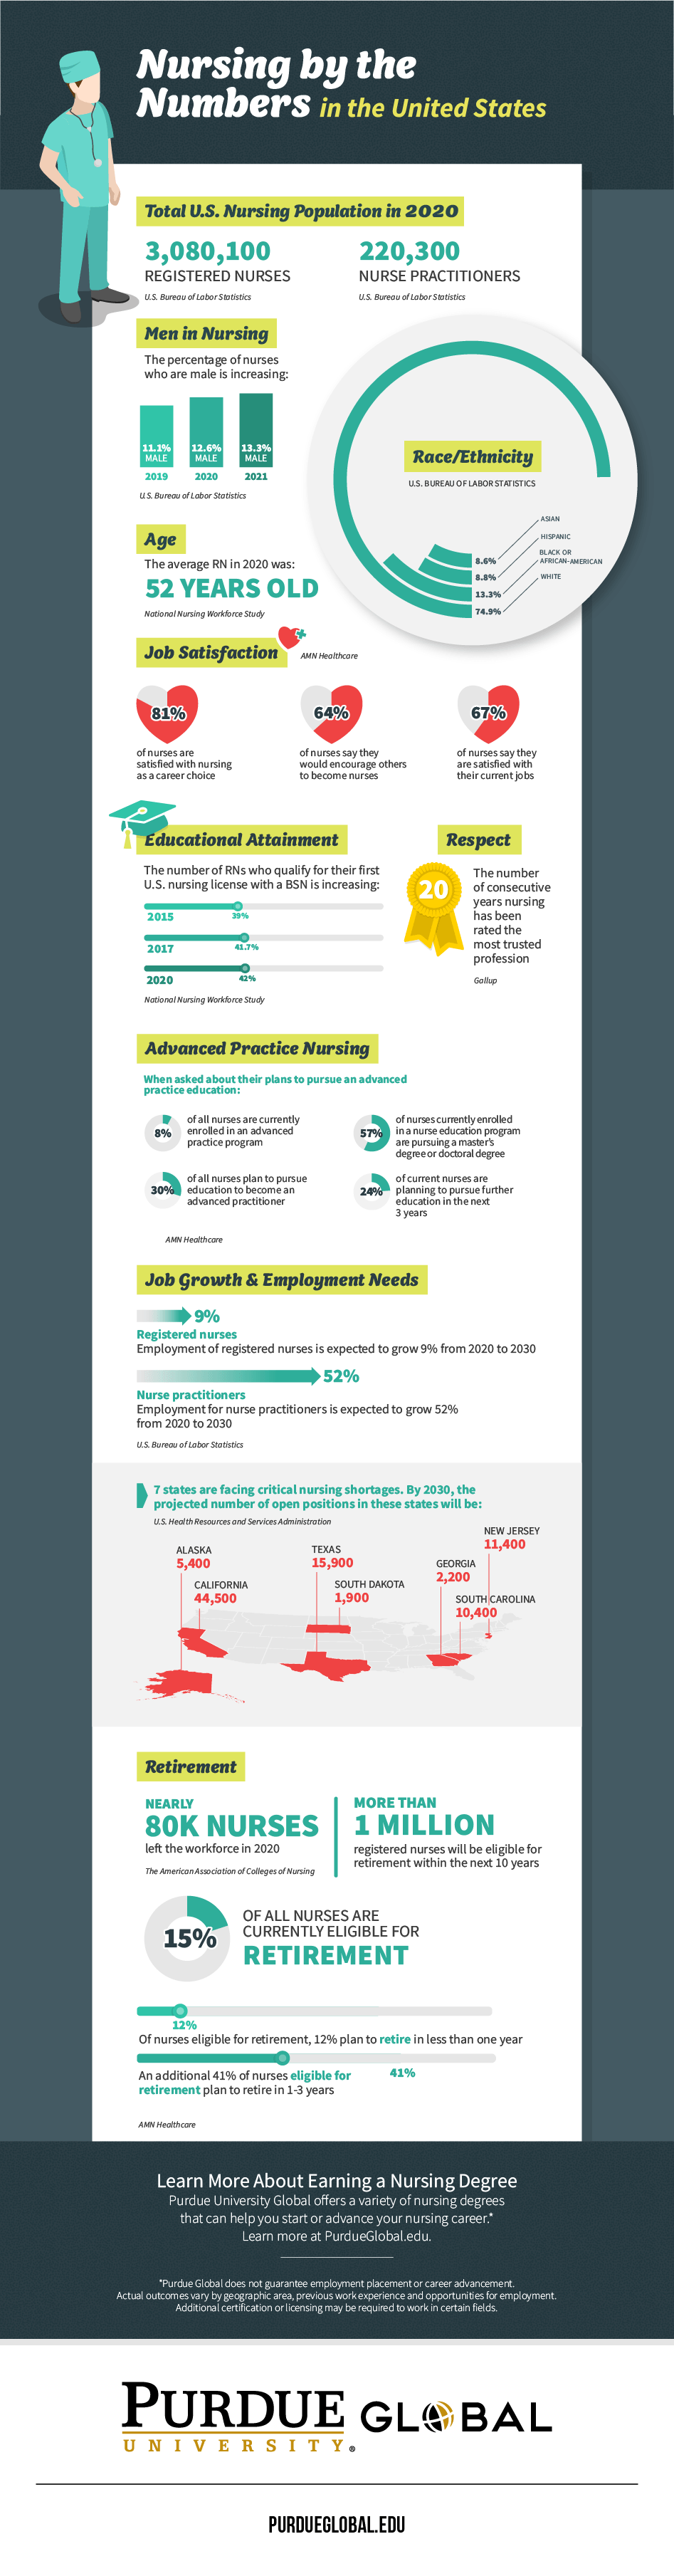 Nursing by the Numbers in the U.S. Infographic